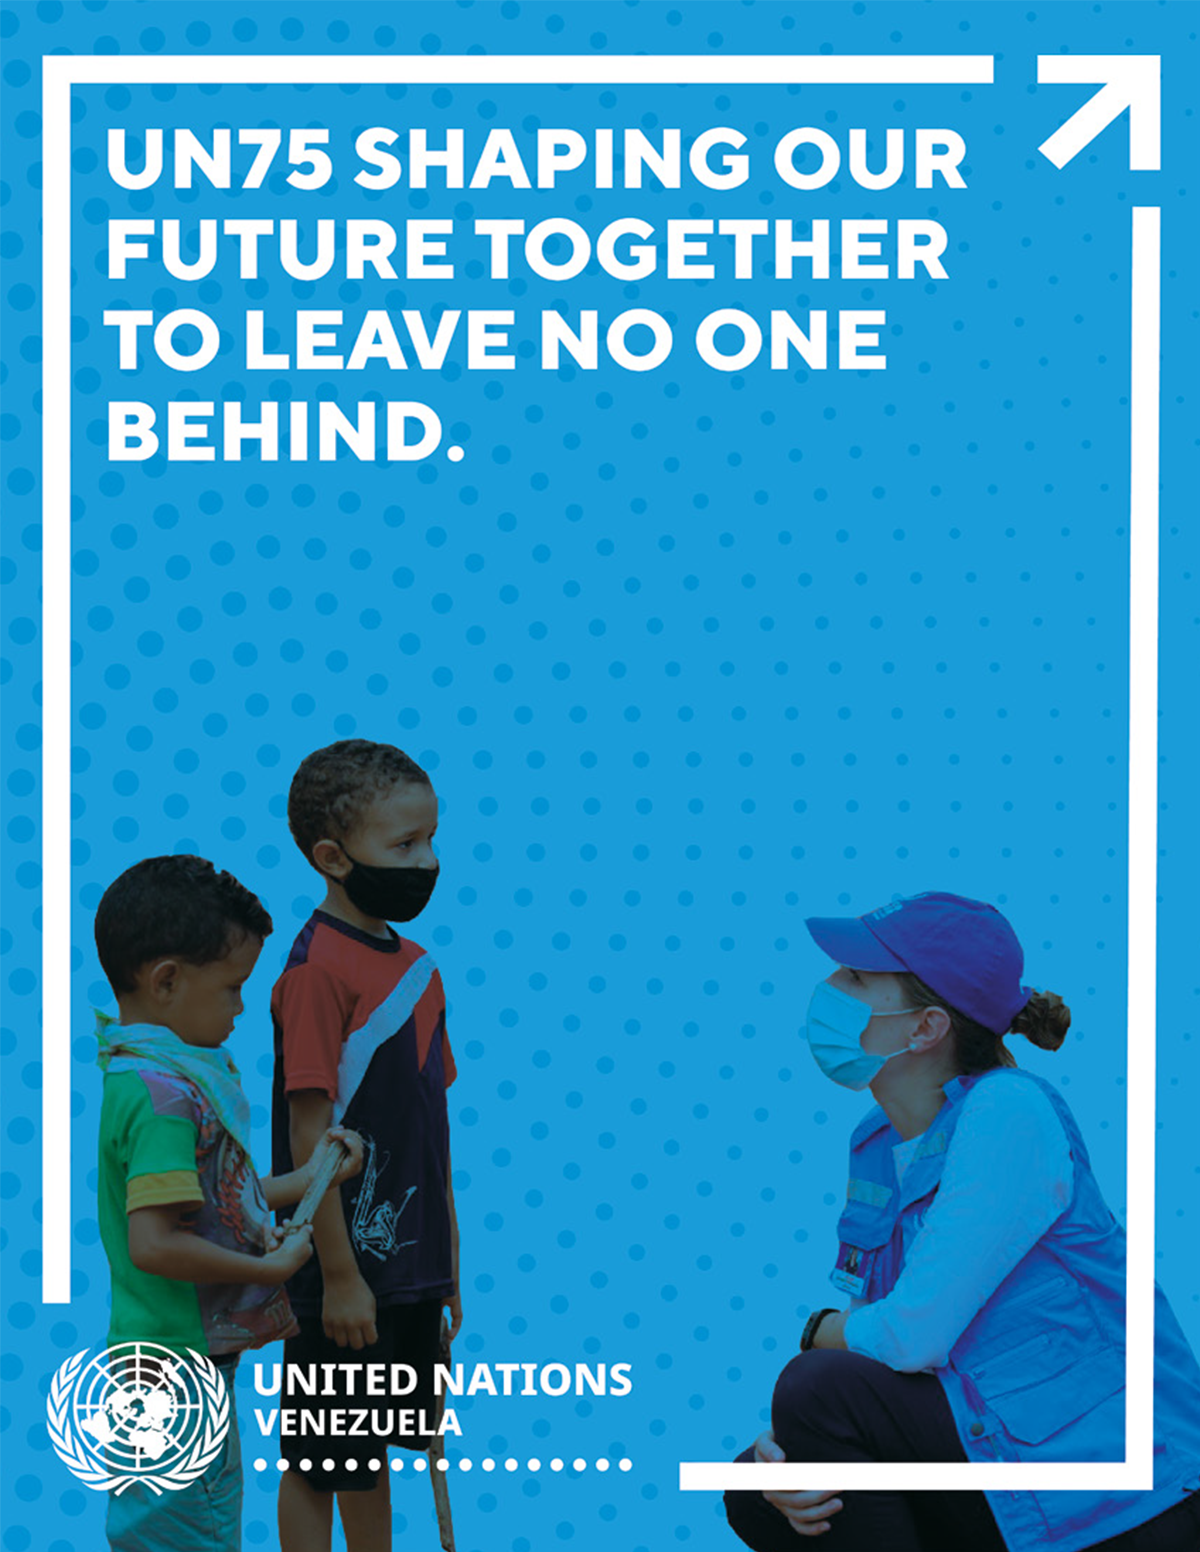 UN75 shaping our future together to leave no one behind